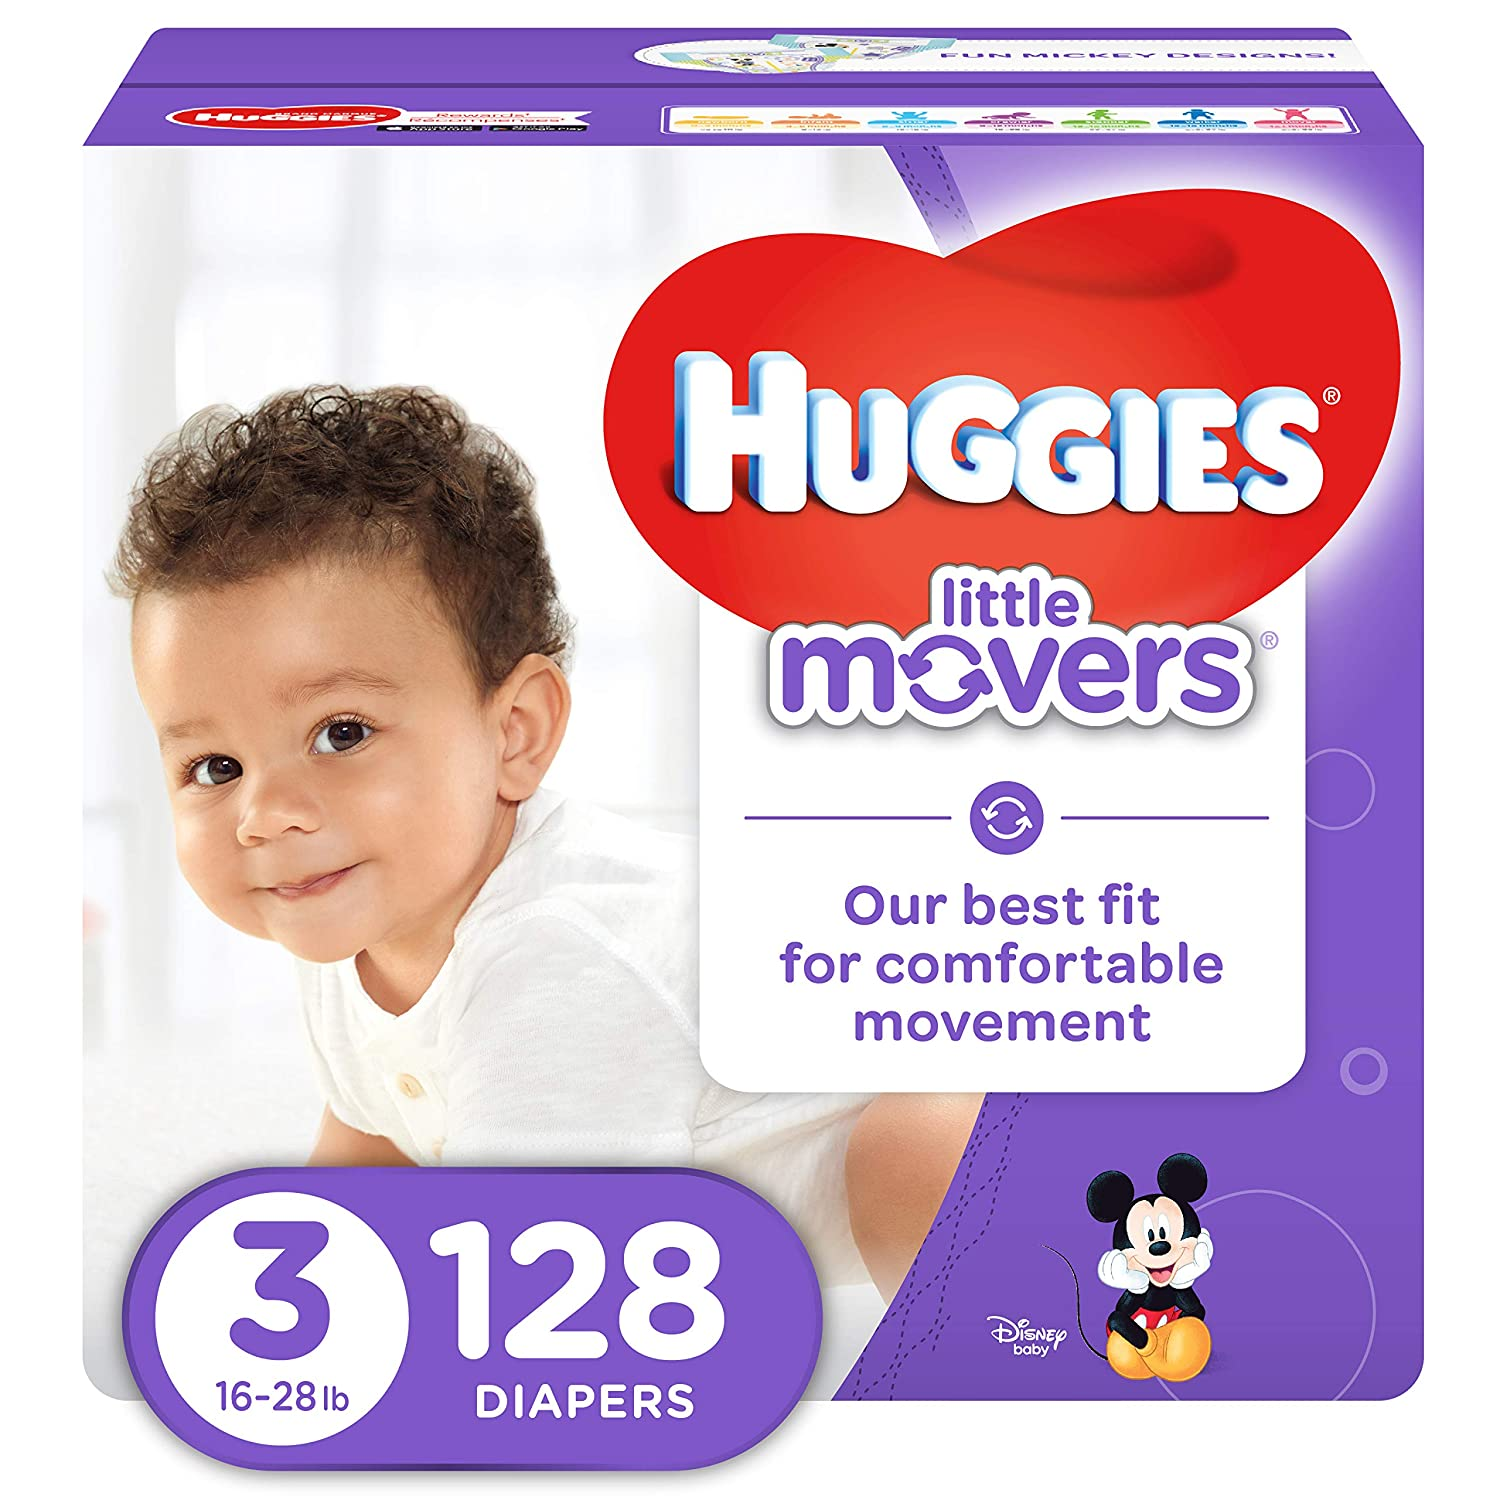 HUGGIES LITTLE MOVERS Diapers, Size 5 (27+ lb.), 96 Ct., GIANT PACK (Packaging May Vary), Baby Diapers for Active Babies 10036000408192